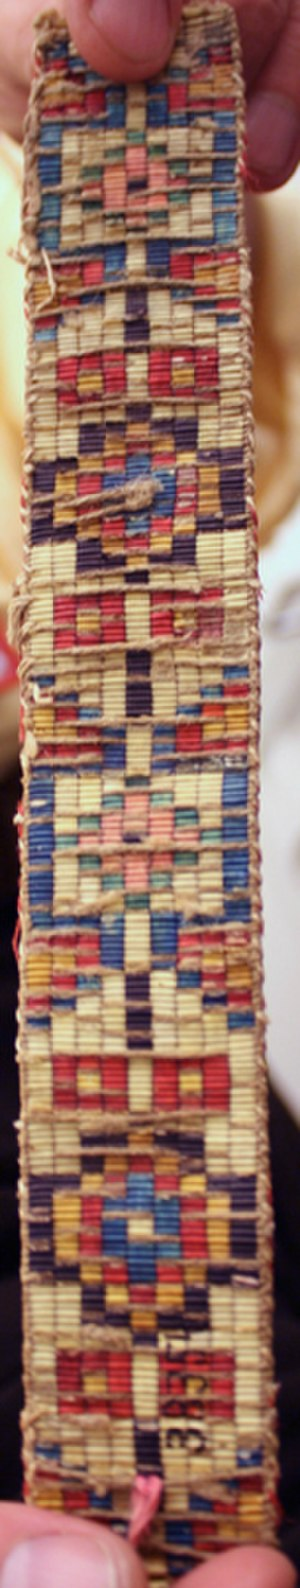 Quillwork - Backside of loomed quillwork collected from an Upper Missouri tribe by the Lewis and Clark Expedition, pre-1804. All natural dyes. Collection of the University of Pennsylvania Museum